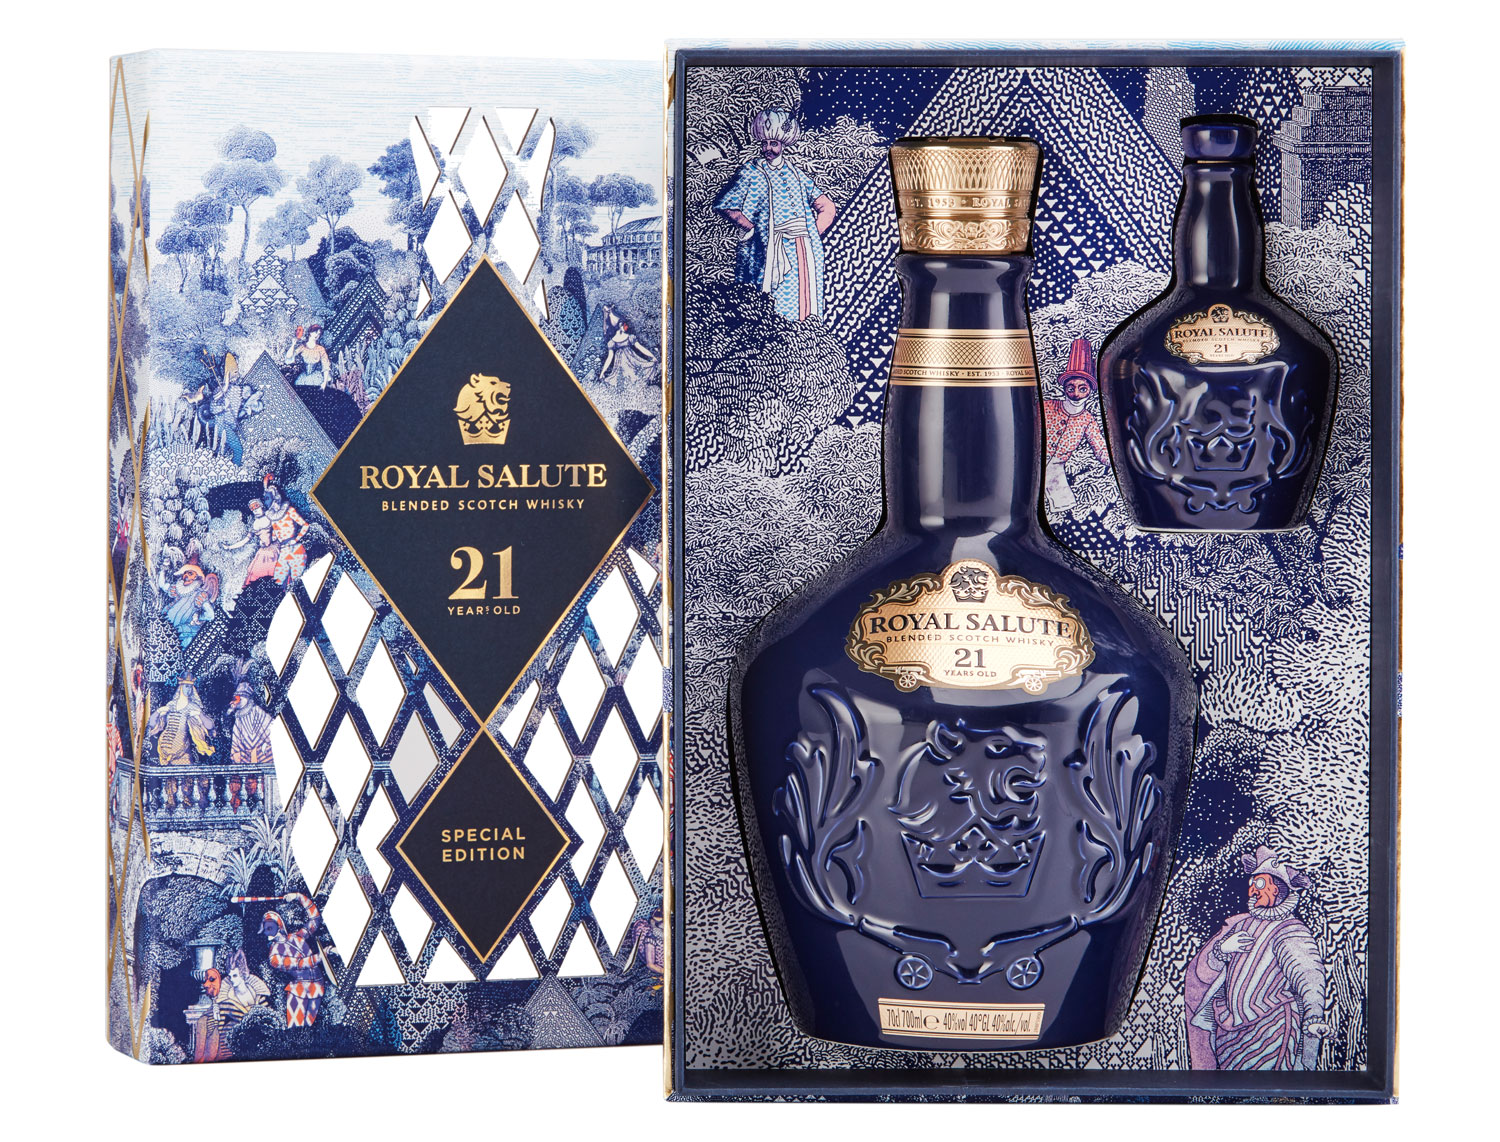 Royal Salute Unveils Masquerade Ball Gift Pack For The Festive Season 8